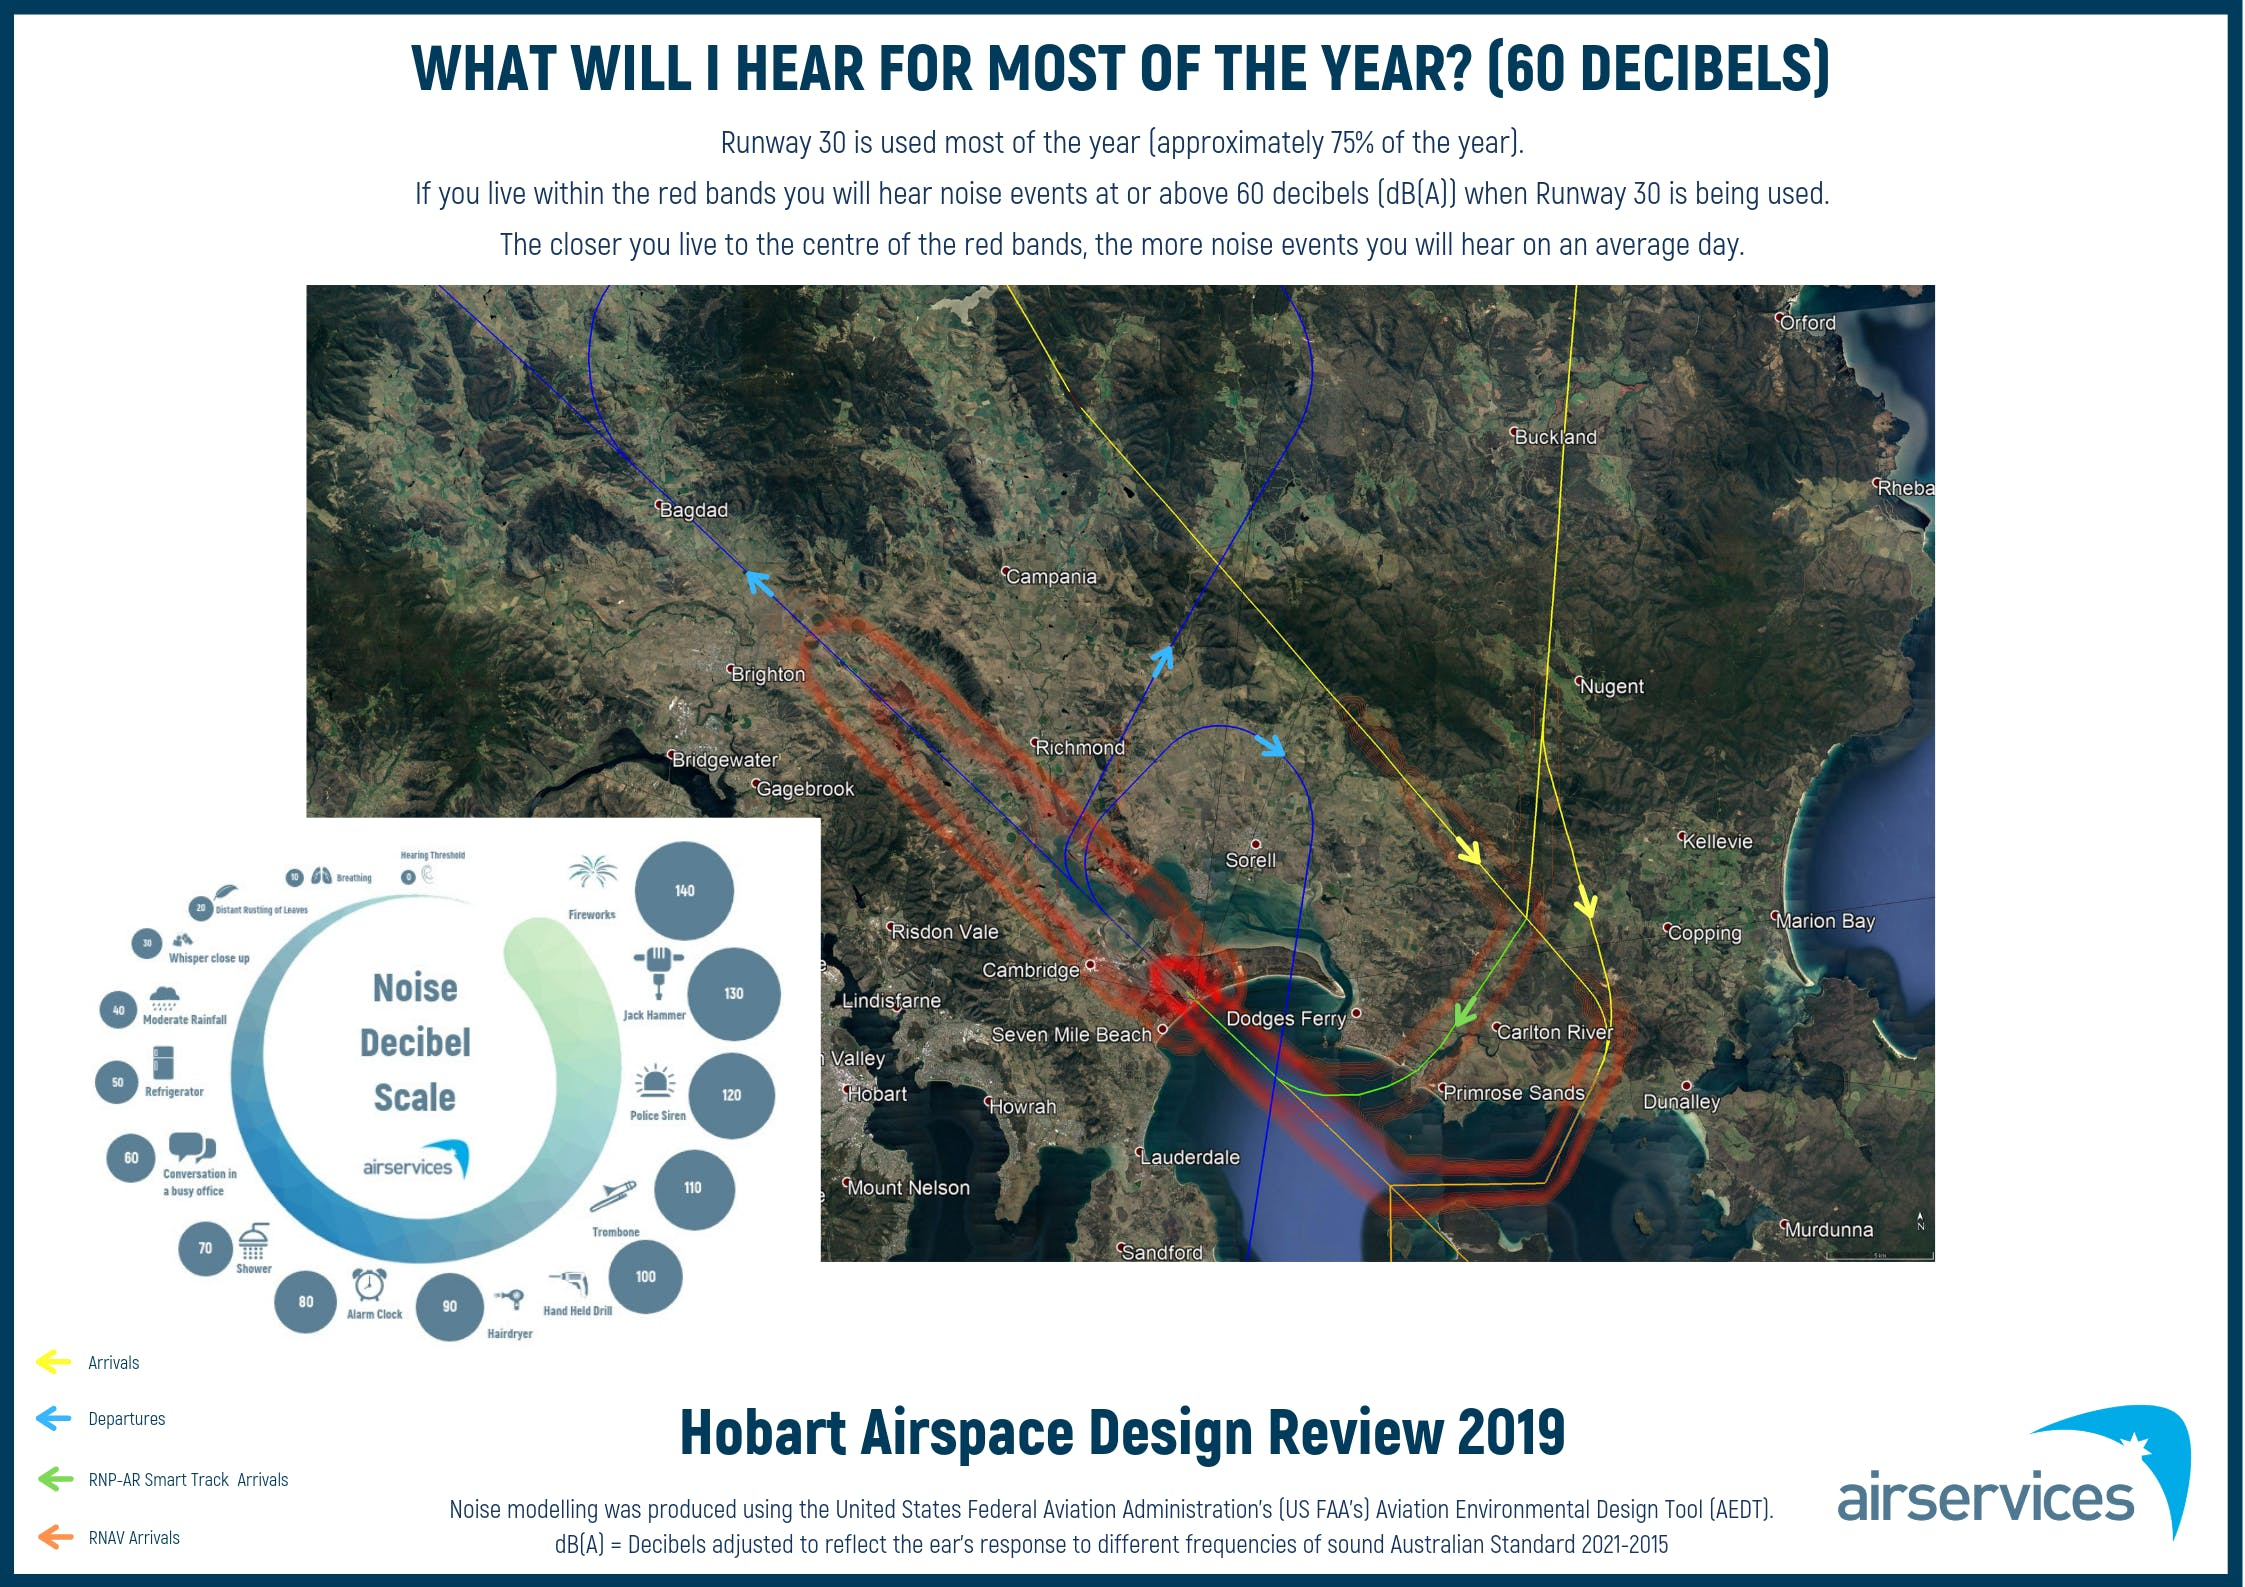 What will I hear: Most Of The Year - 60 Decibels